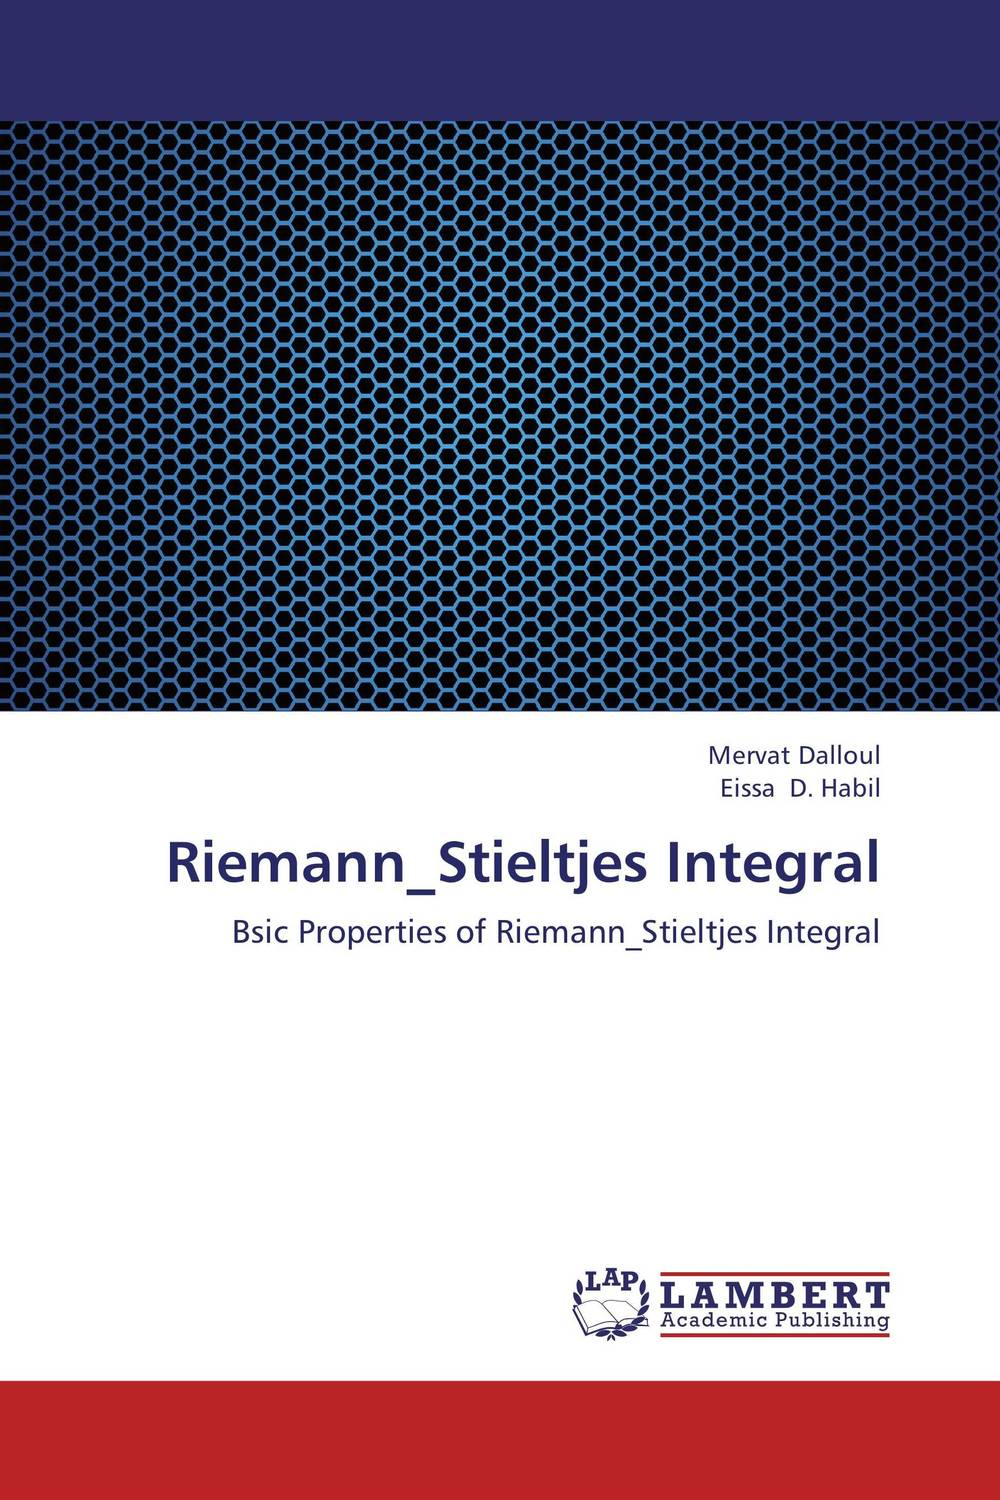 Riemann_Stieltjes Integral all we shall know